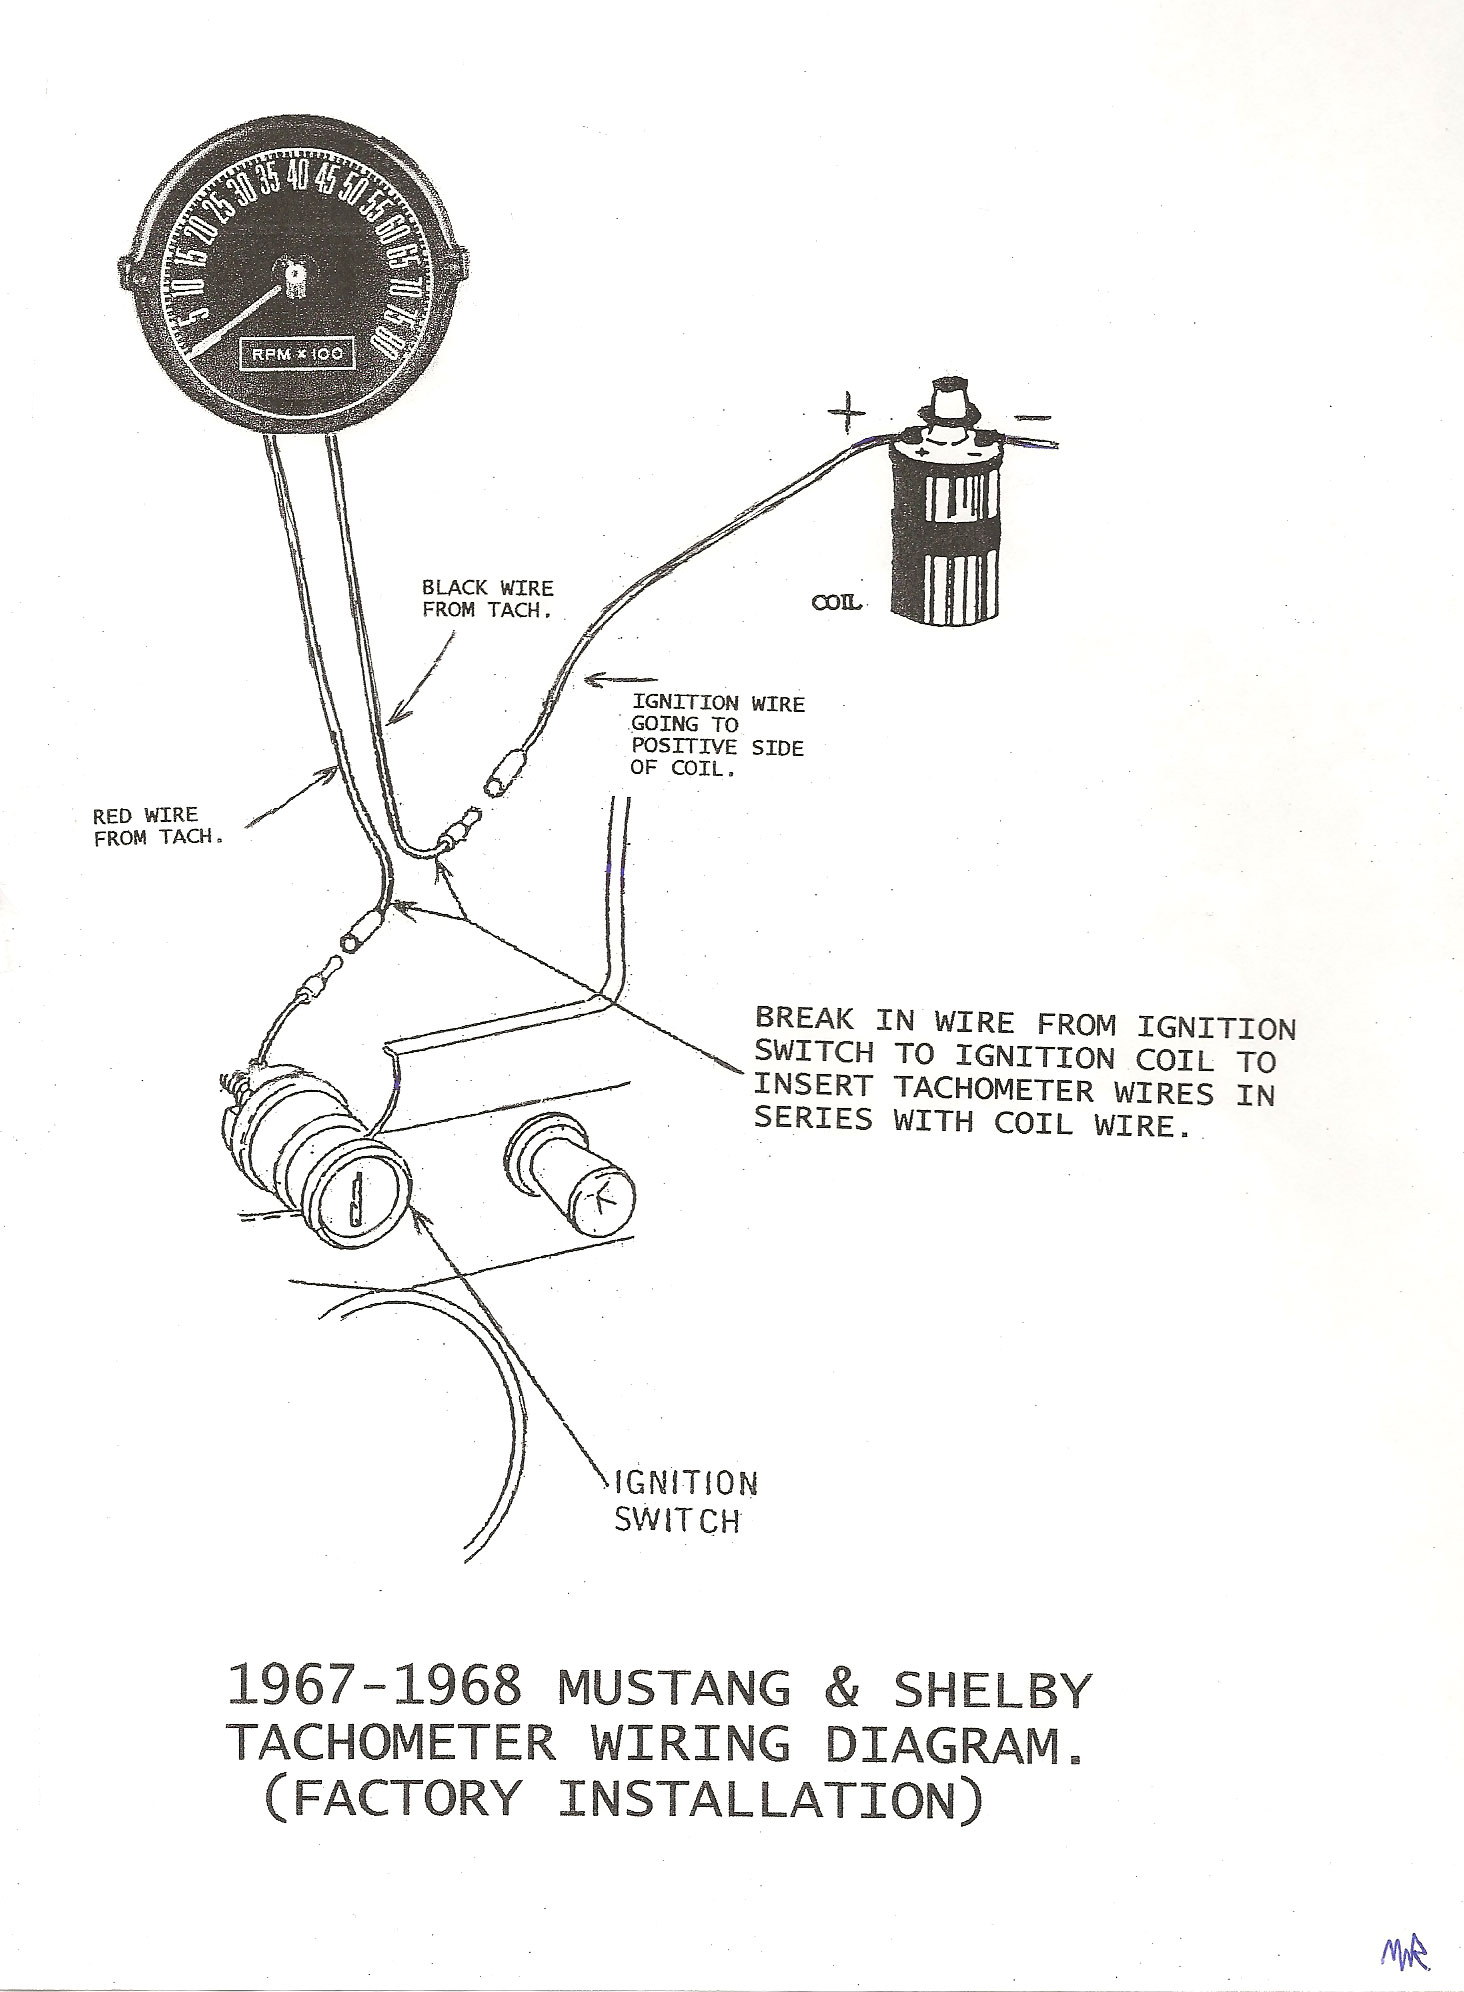 ... 1967-68 Mustang Shelby Factory Tach Wiring Diagram (JPEG Image) ...